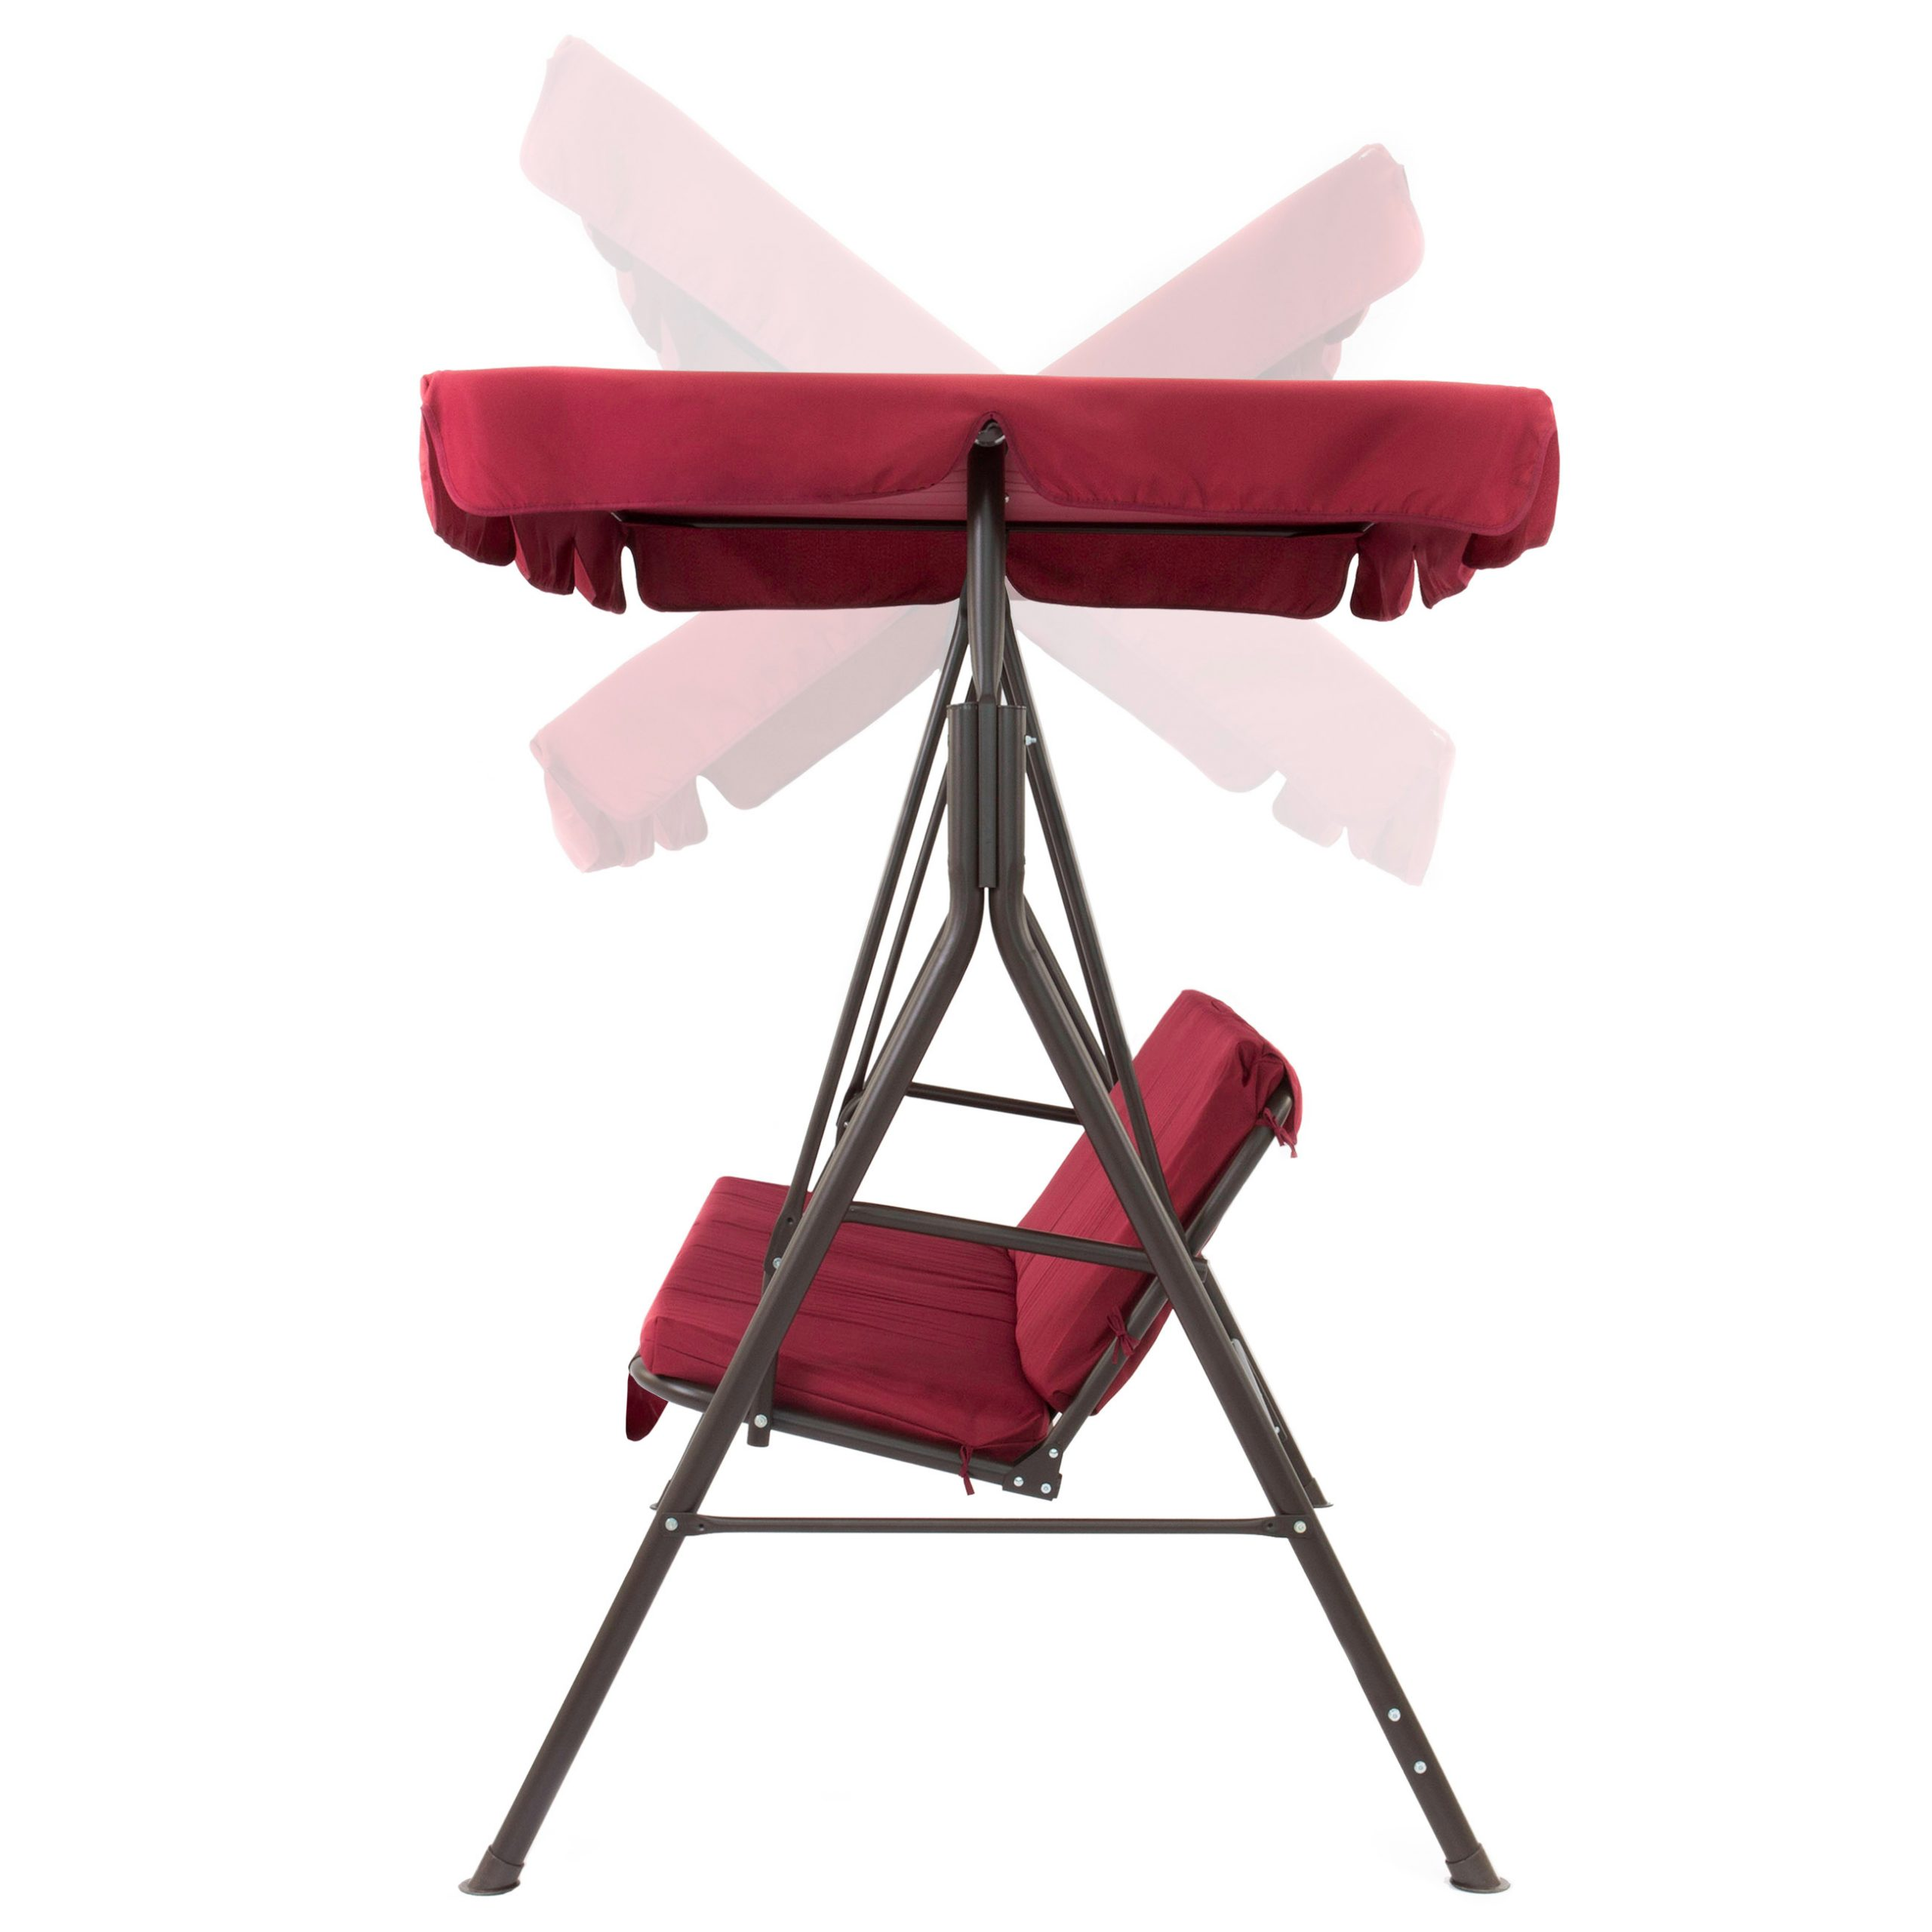 Best Choice Products 2 Person Outdoor Large Convertible Pertaining To Latest 2 Person Outdoor Convertible Canopy Swing Gliders With Removable Cushions Beige (View 22 of 30)